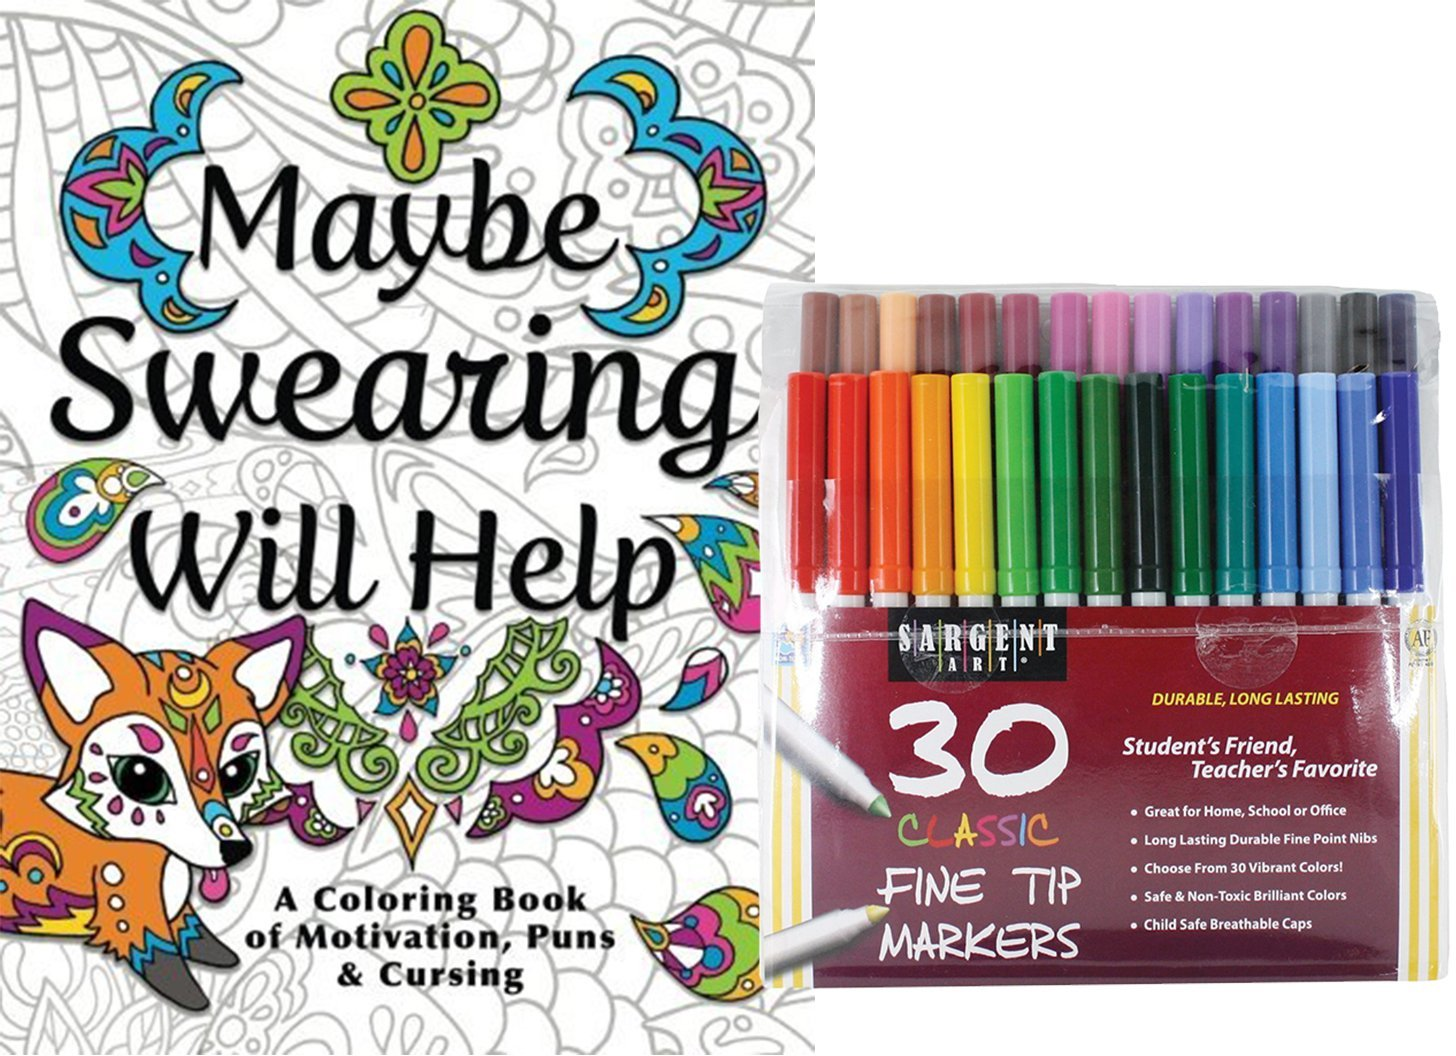 Sargent Art Classic Fine Tip Markers in a Case, Set of 30 and Maybe Swearing Will Help: An Adult Coloring Book of Motivation, Puns & Cursing, Stress Relieving Designs to Relax and Enjoy!